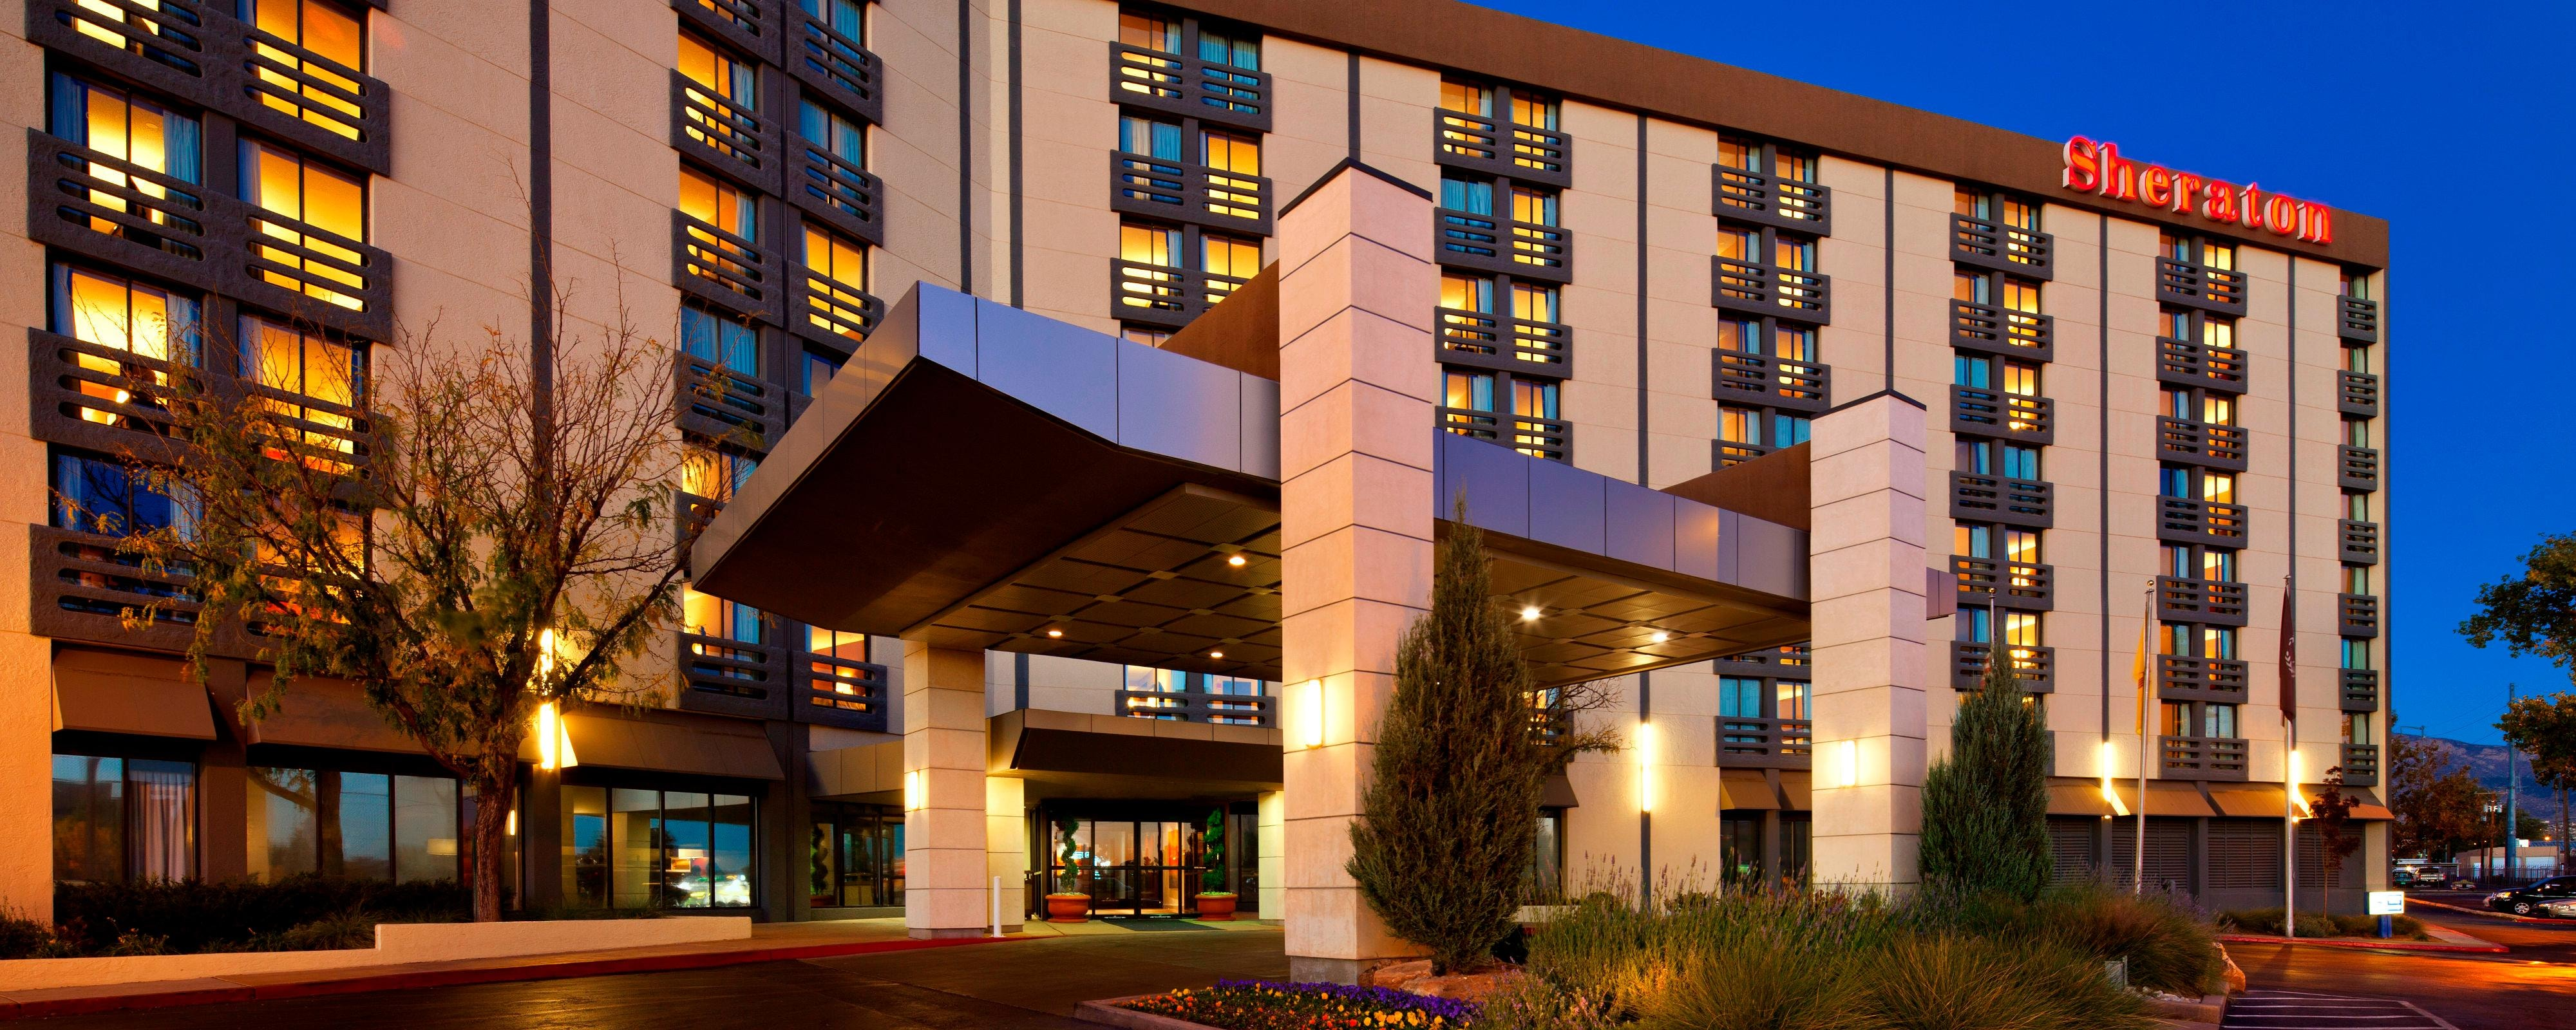 Uptown Albuquerque Hotels In New Mexico Sheraton Albuquerque Uptown